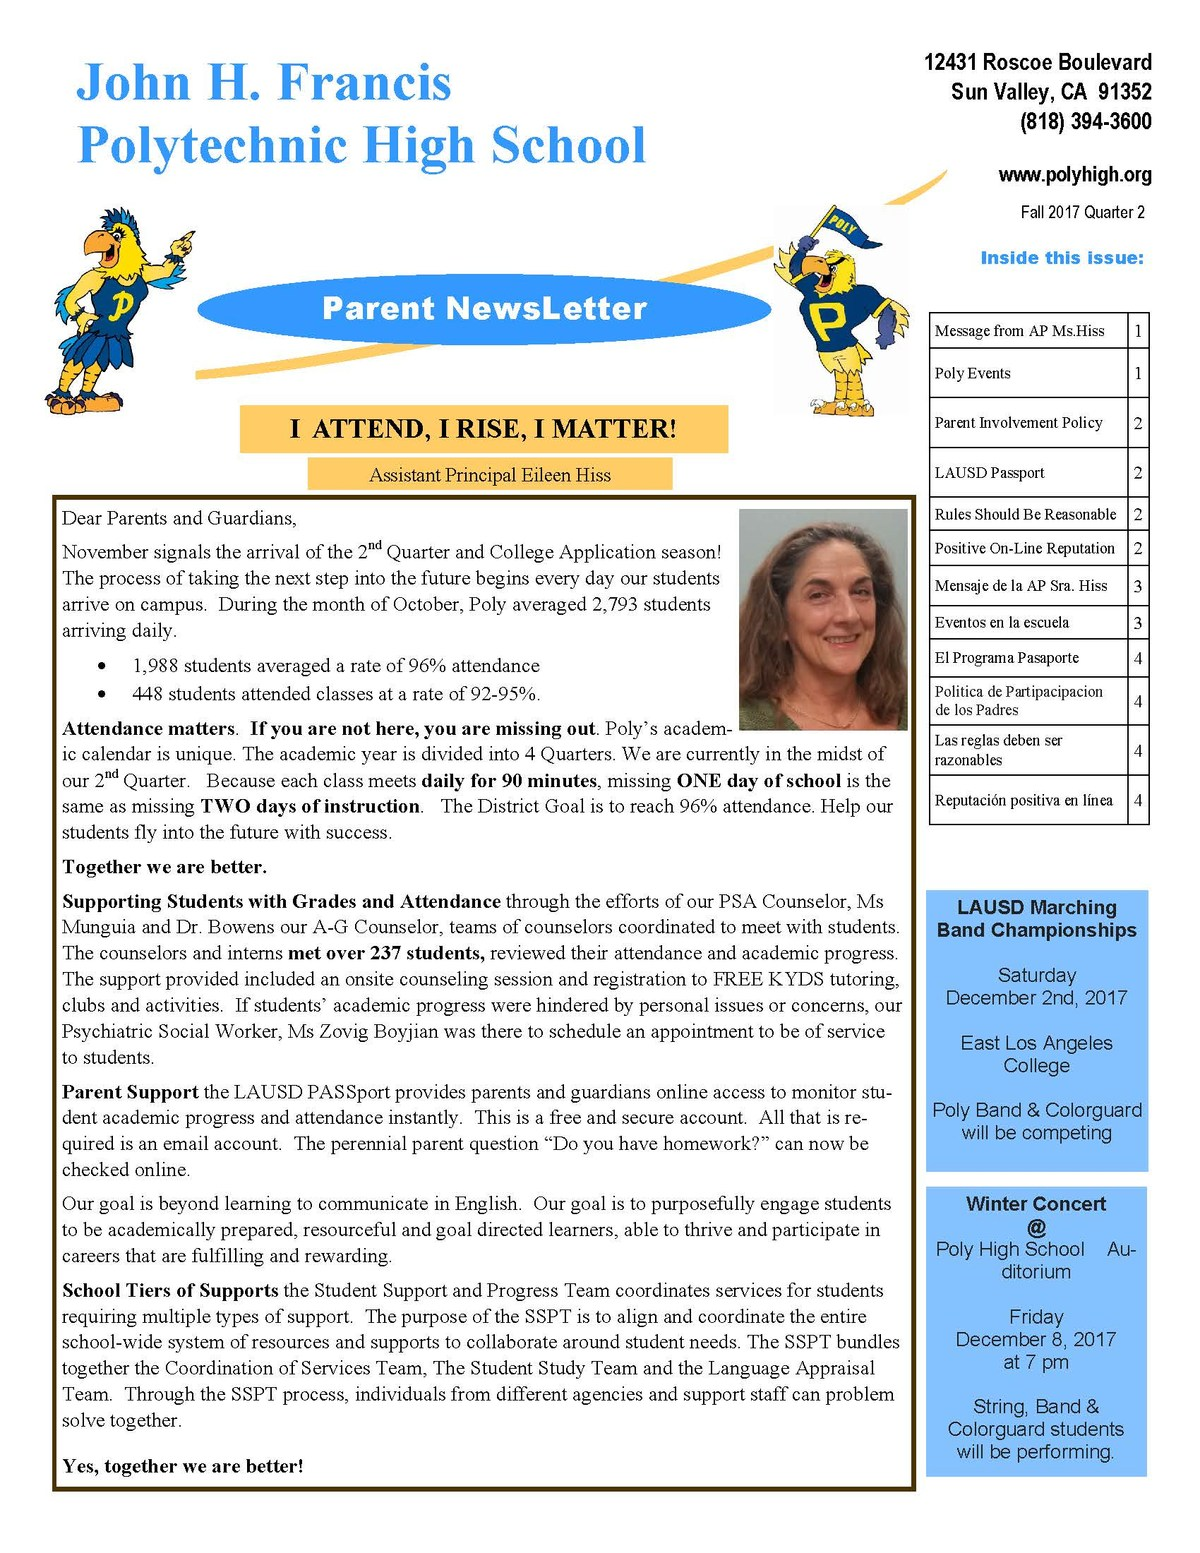 Parent Newsletter fall quarter 2 2017